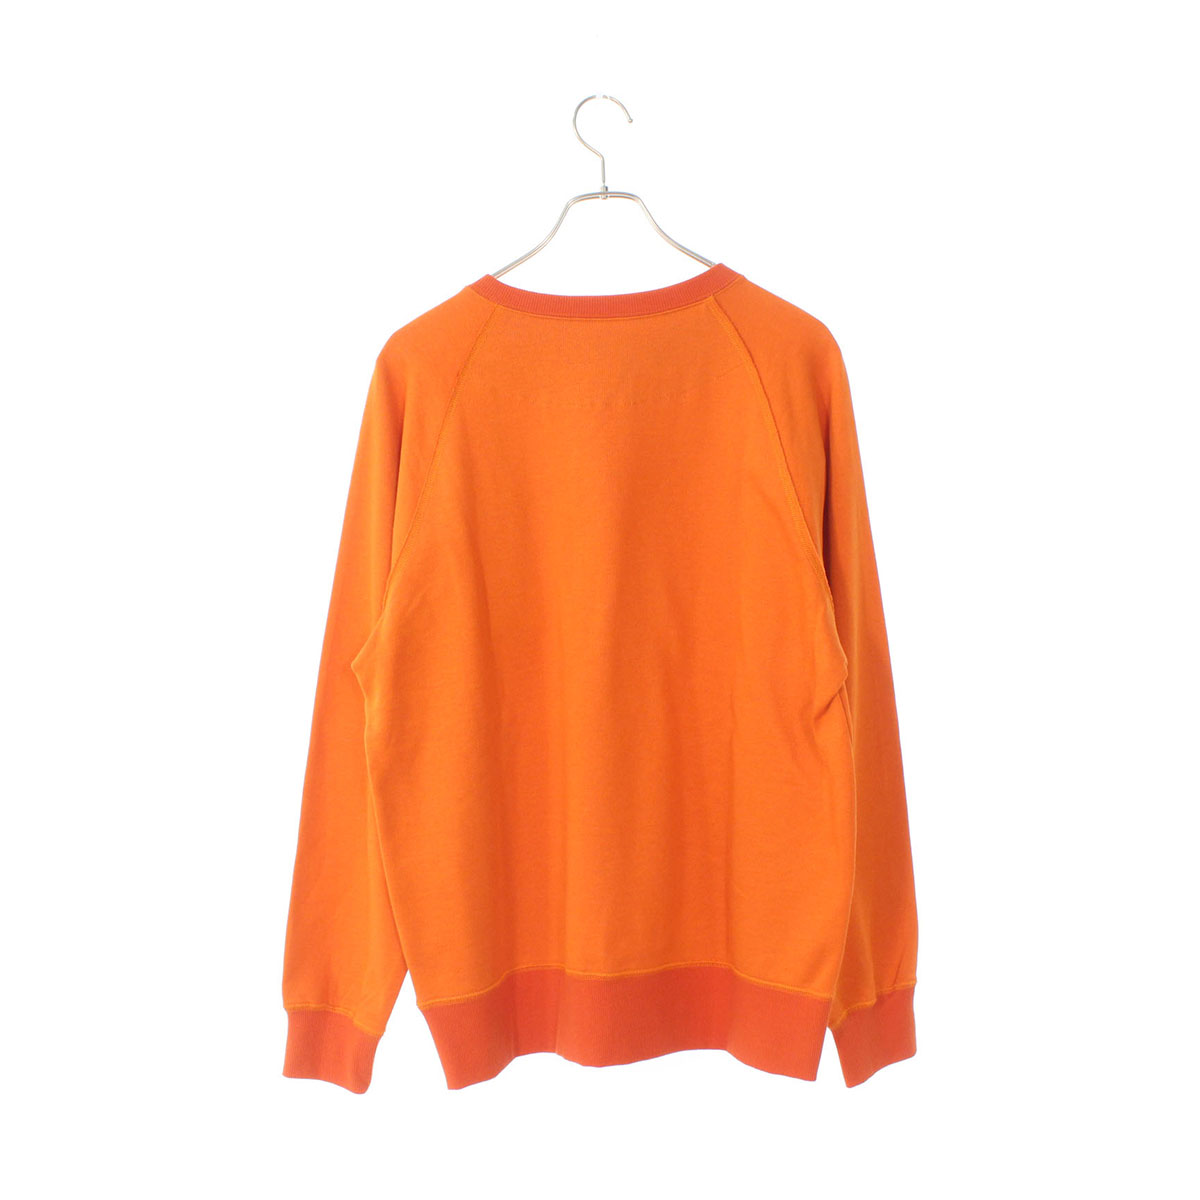 Outpoket pullover